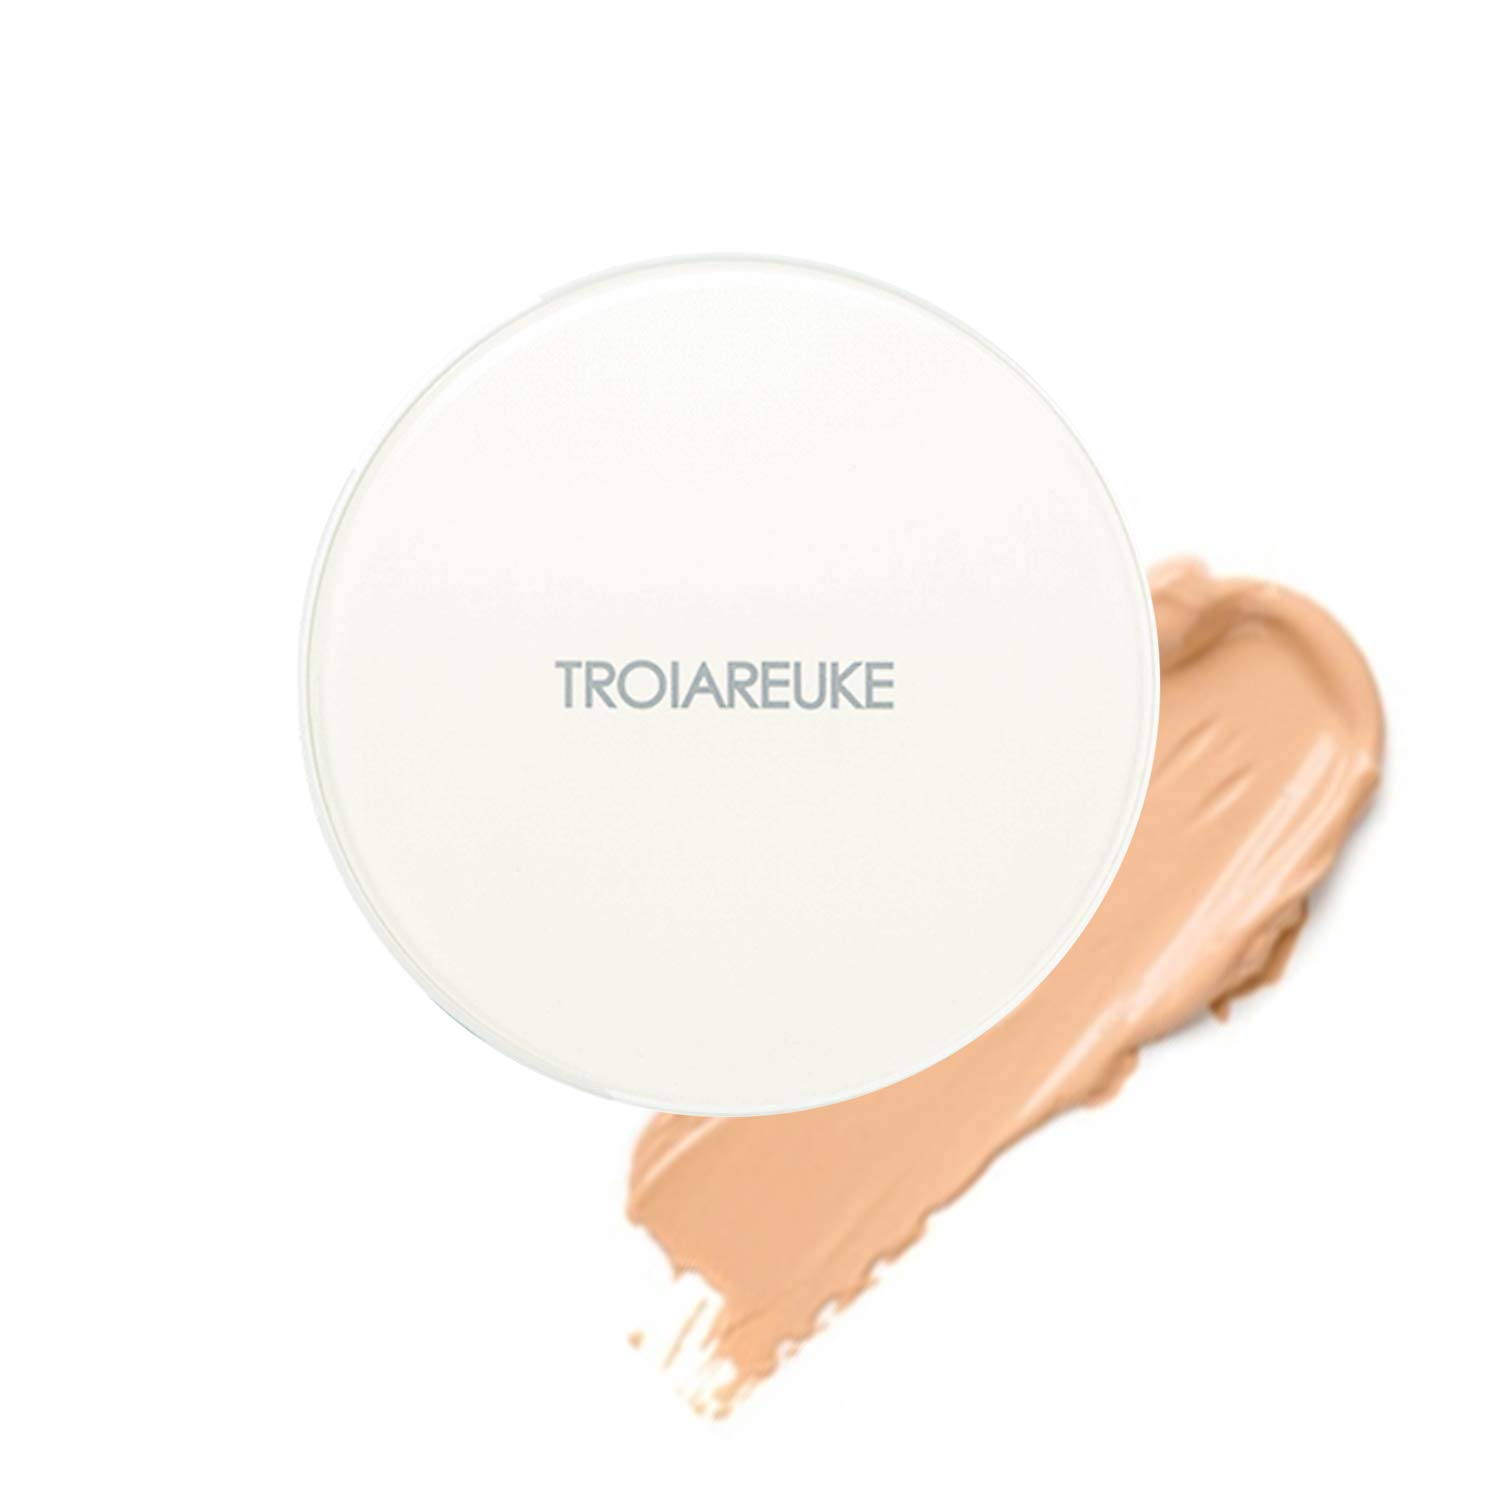 TROIAREUKE H+ Cushion Foundation, 23 Natural Beige - SPF50+ PA++++ Healing Skincare Cushion for Dry Skin